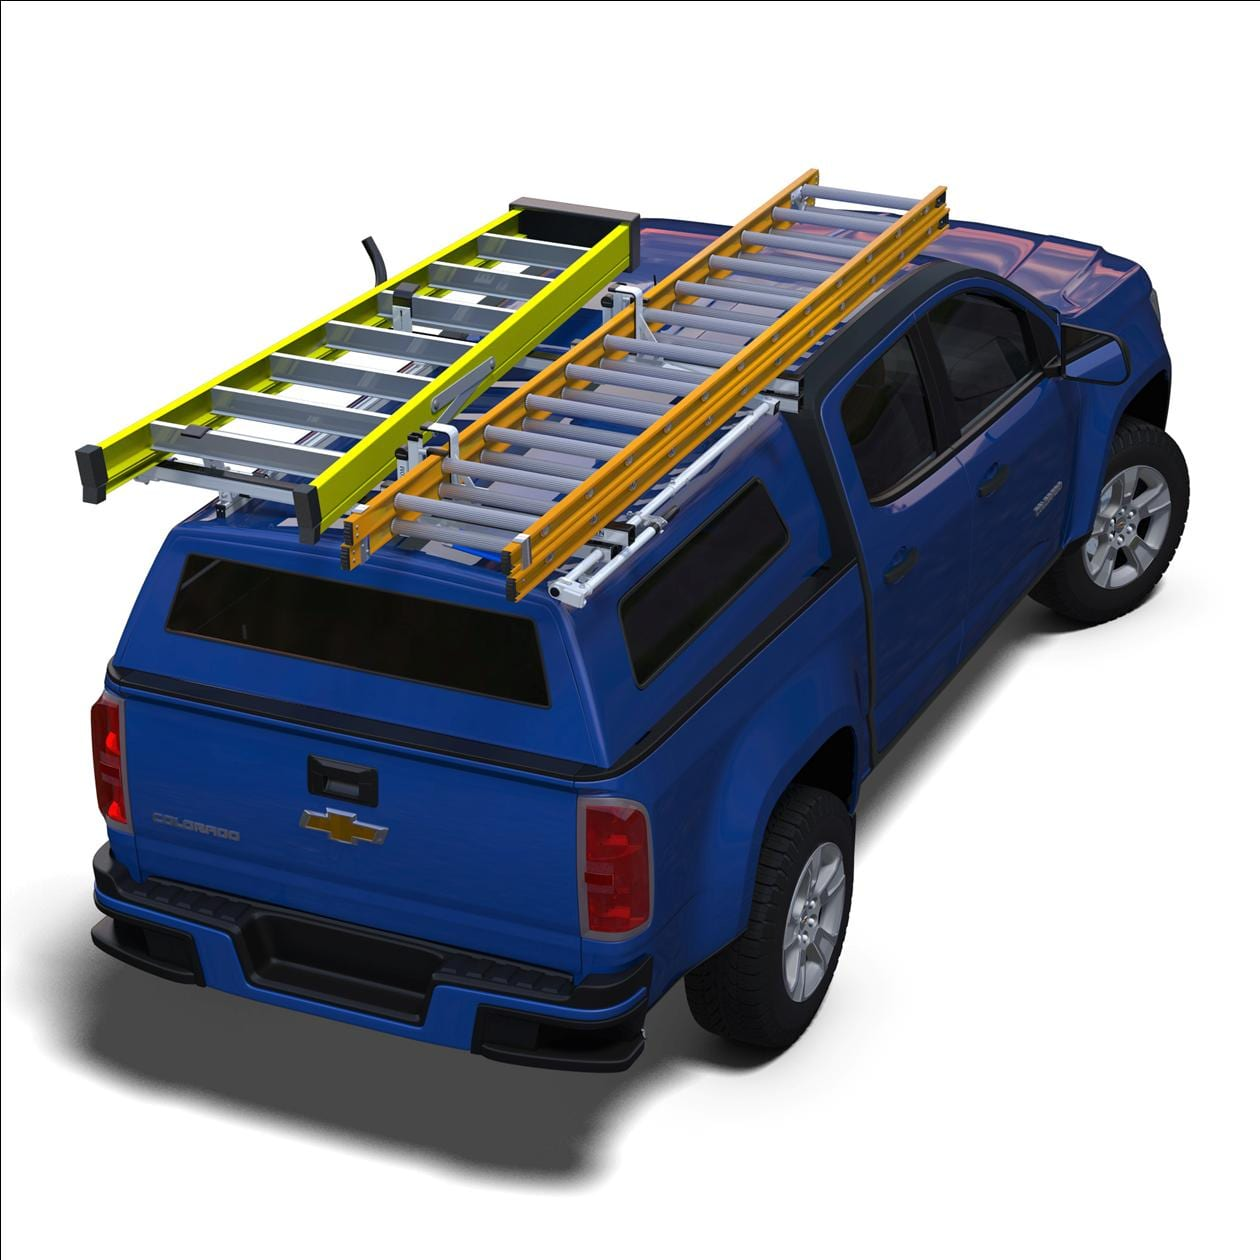 ergorack combination clamp down drop down ladder rack for full size pickup trucks with cap